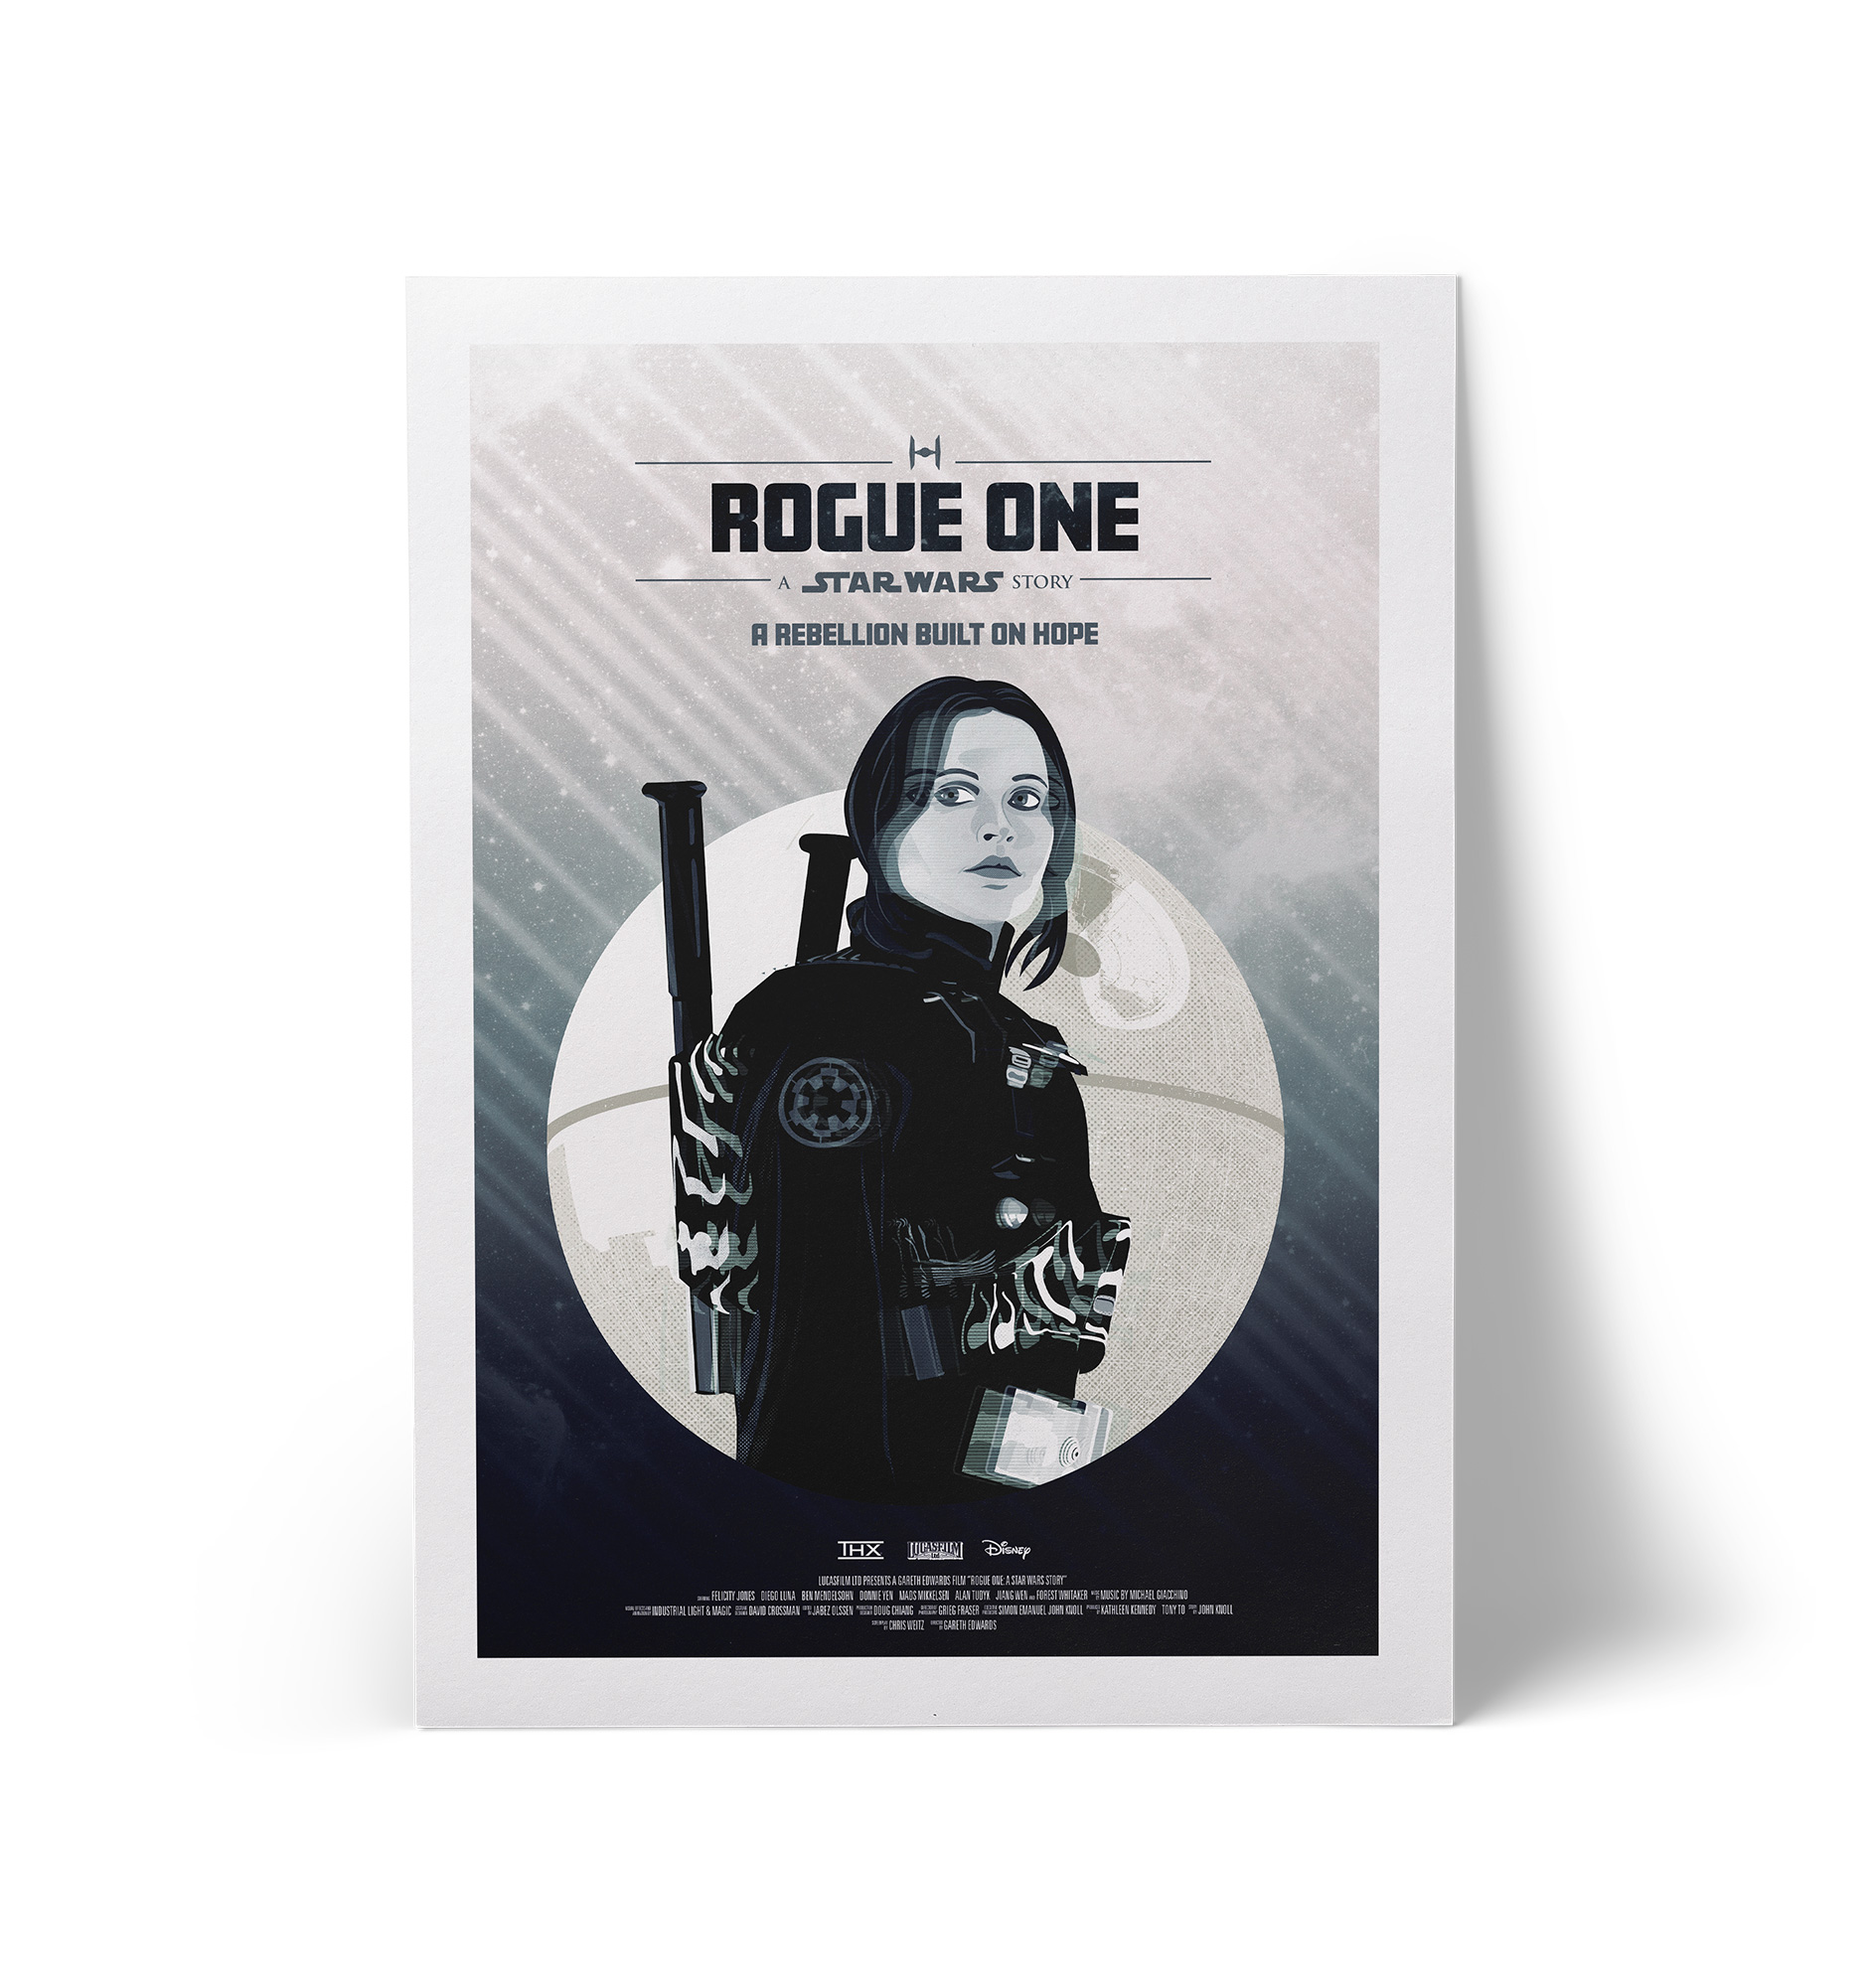 img_rogueone_poster1.jpg